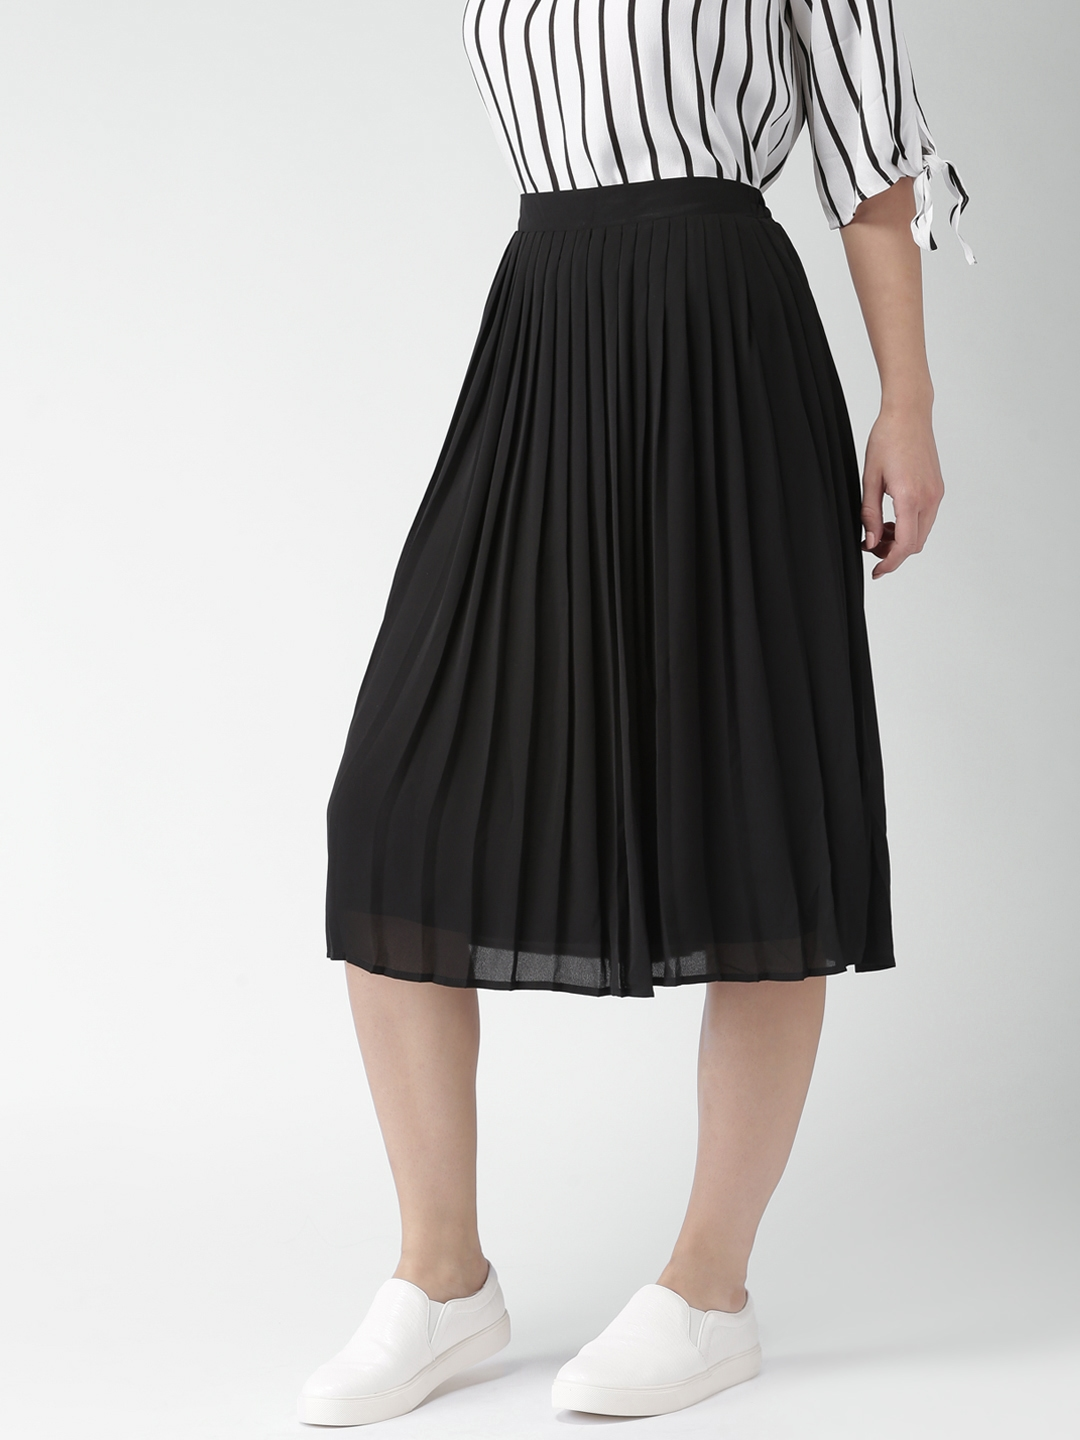 652ddbf00f Buy FOREVER 21 Black Midi Flared Skirt With Accordion Pleats ...